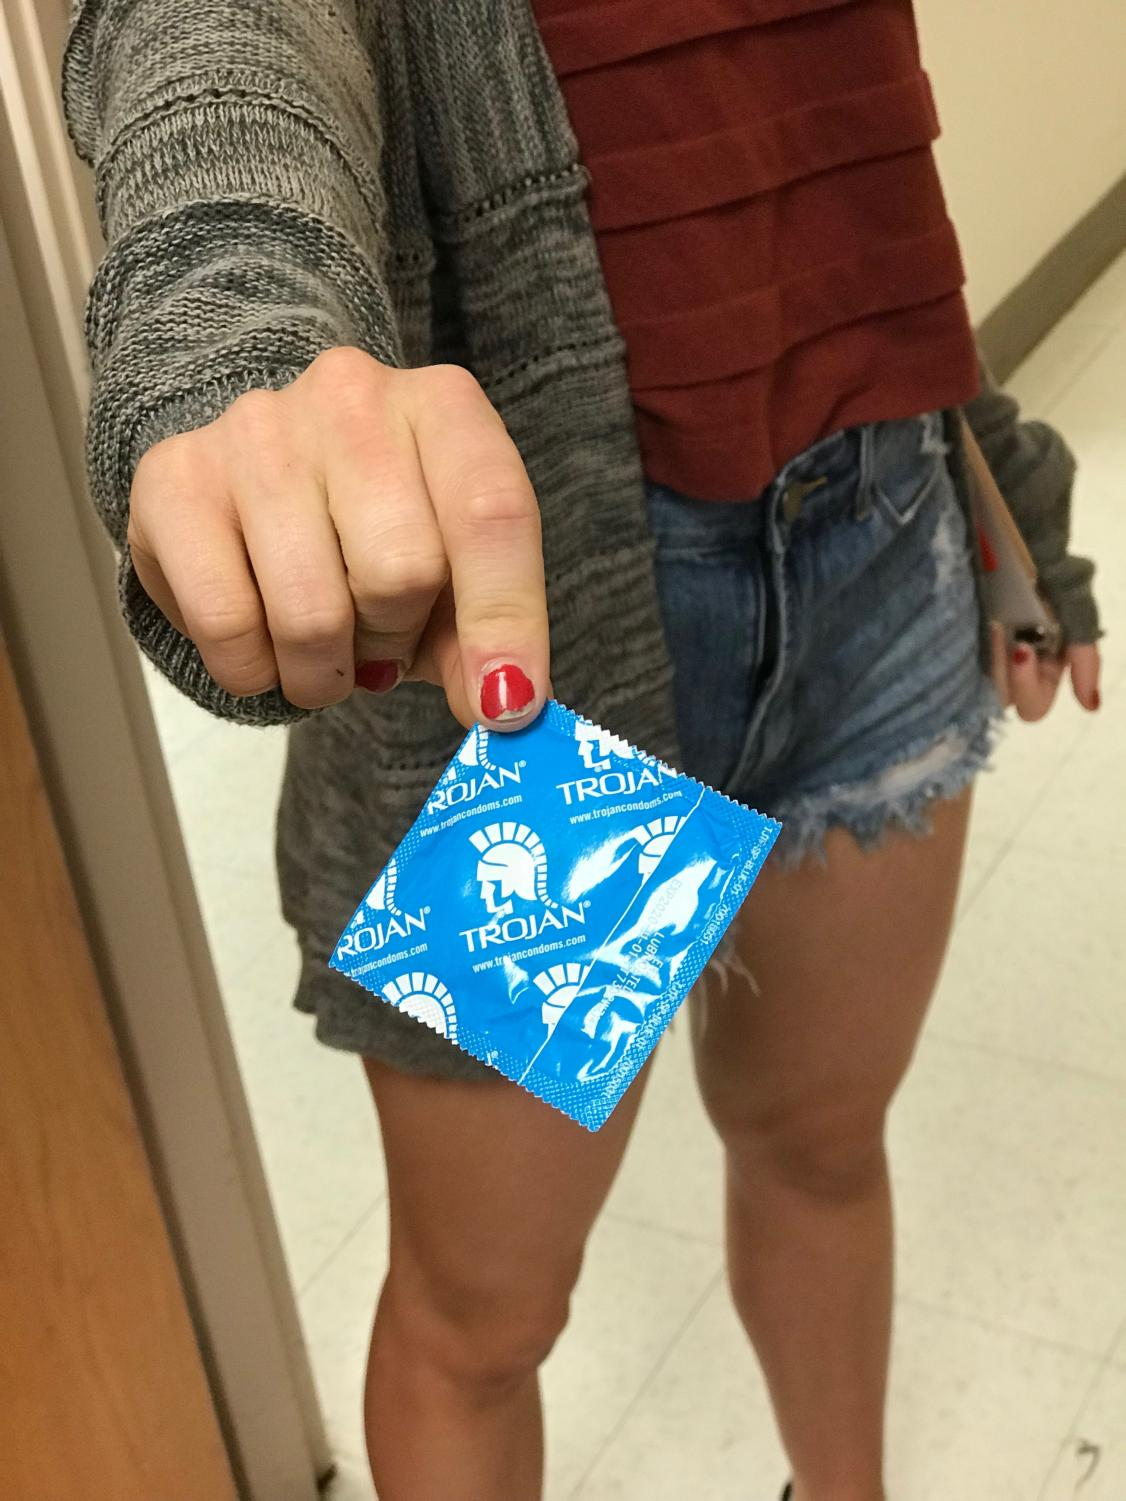 After a recent rise of STDs and STIs in the state of Md., MCPS officials have implemented a new condom policy